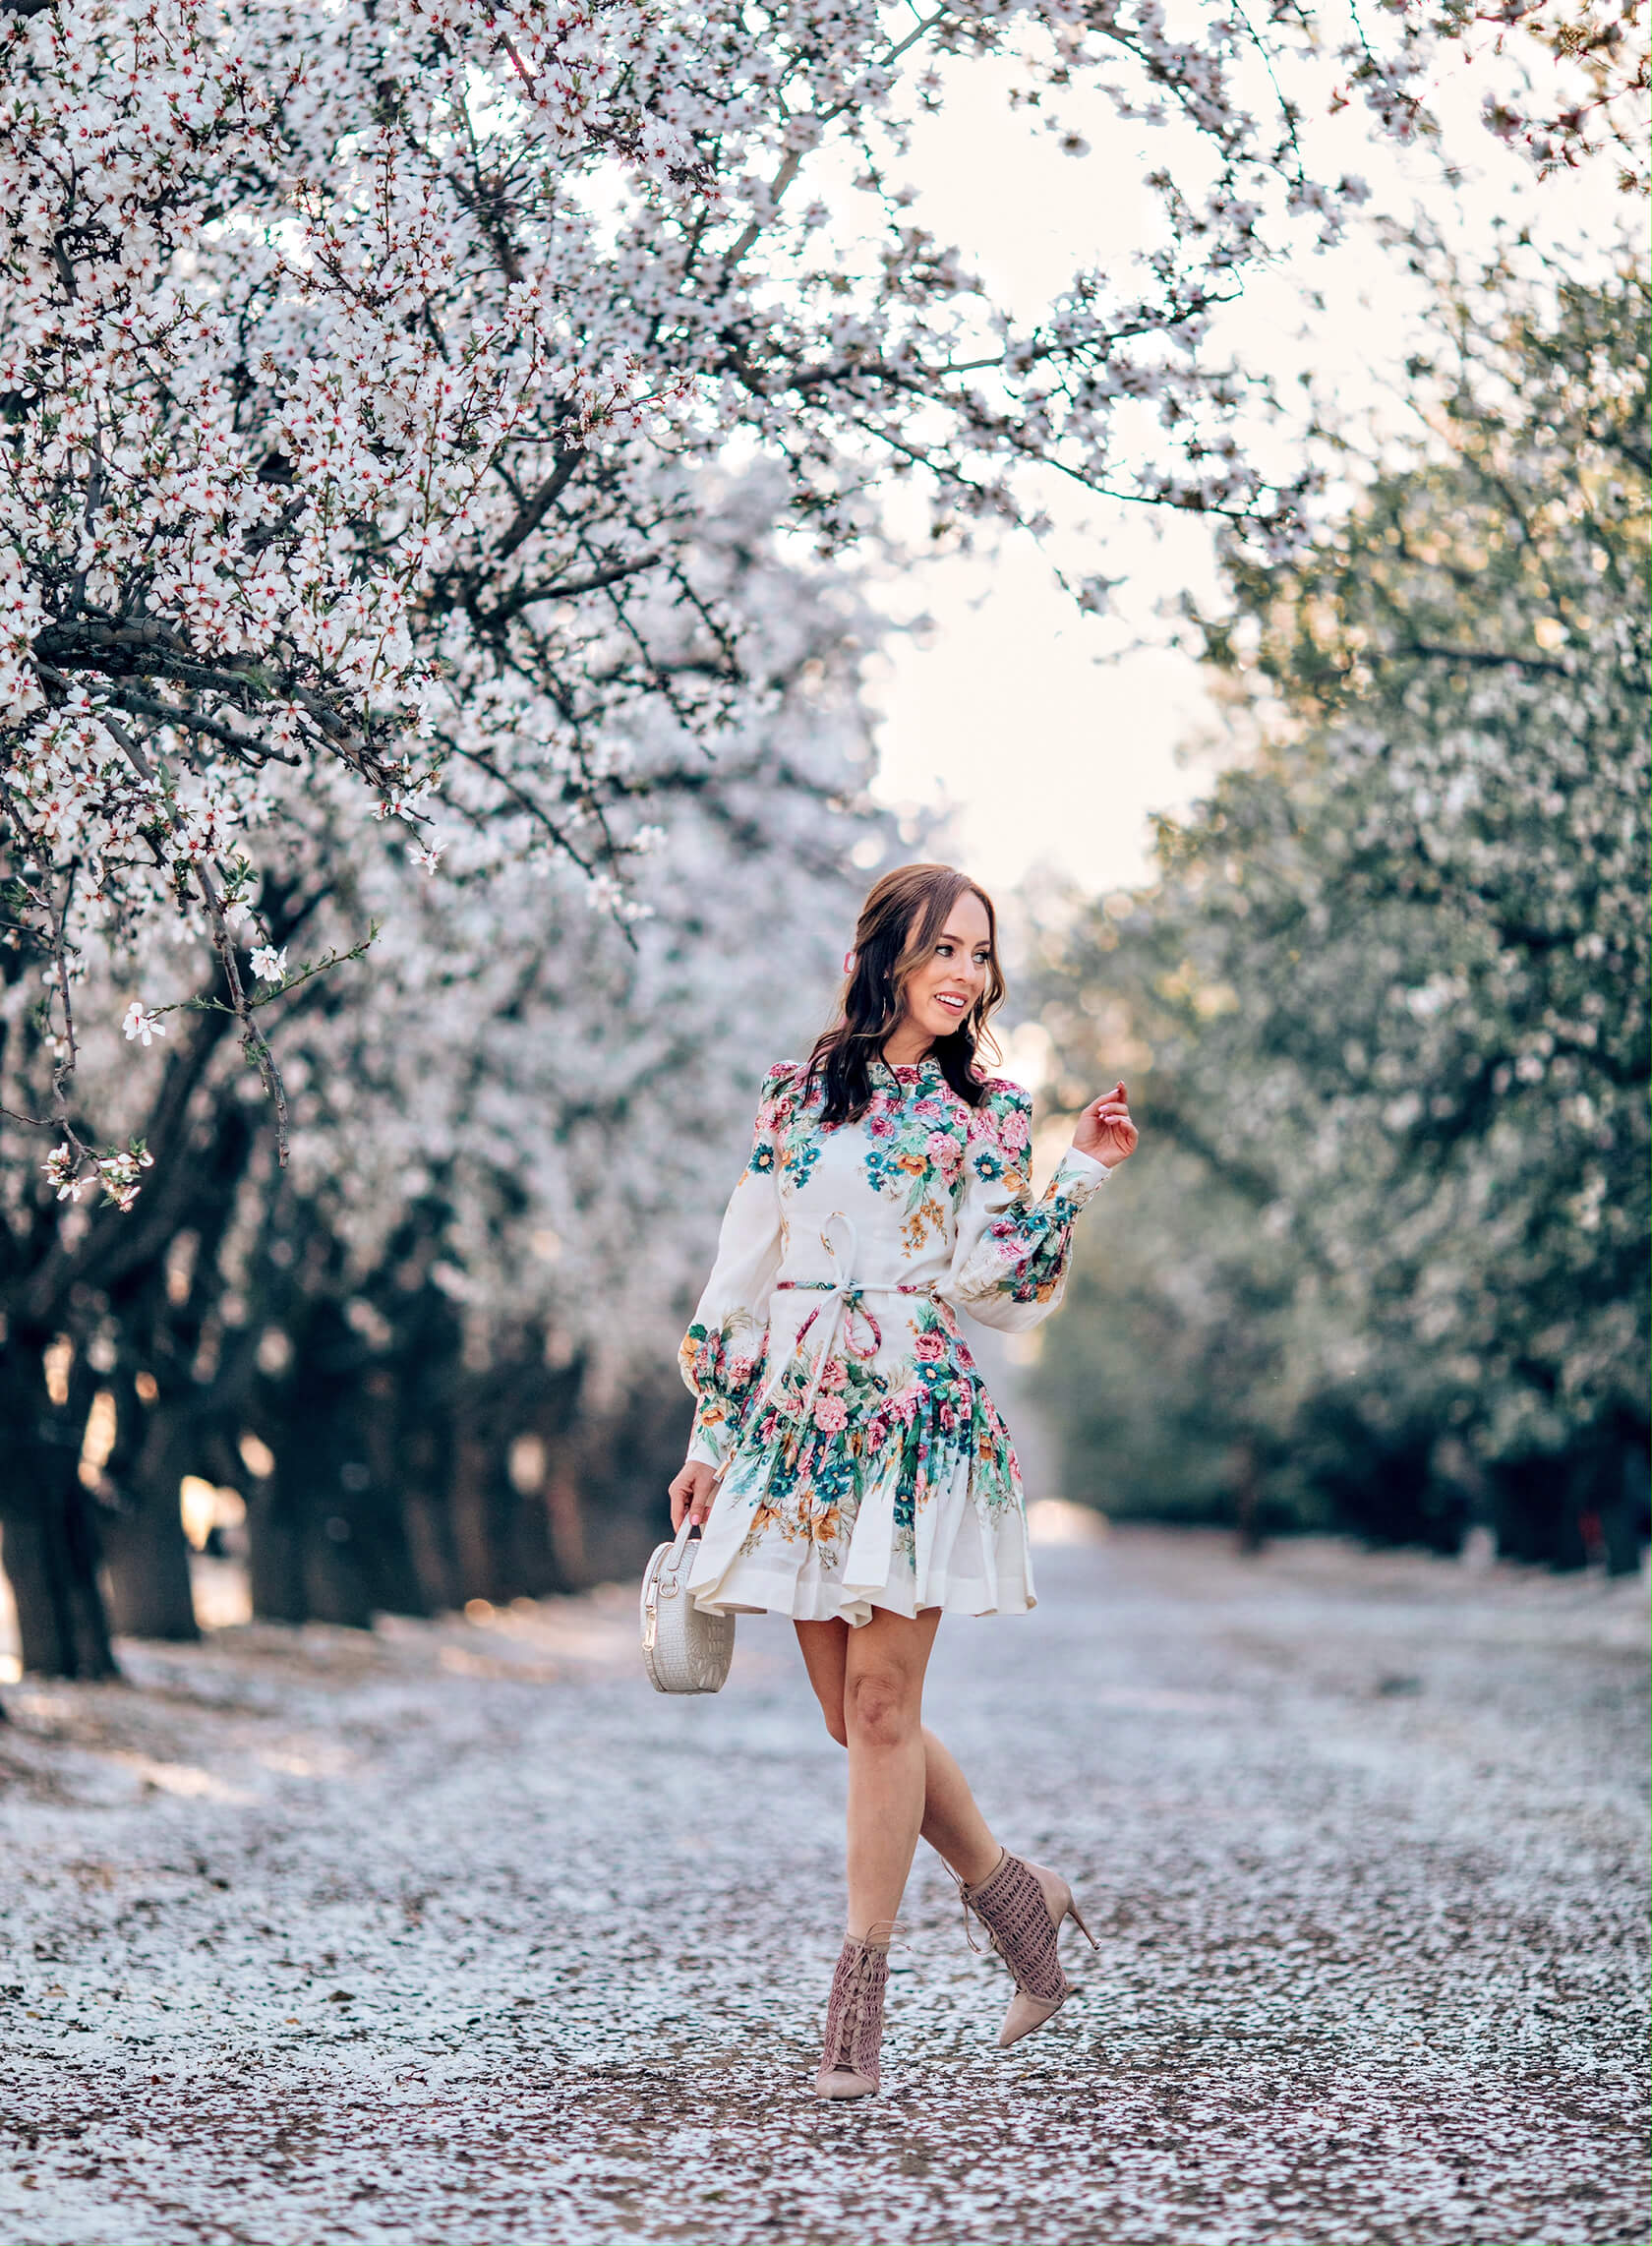 Sydne Style wears floral dress and booties in almond orchards in bakersfield